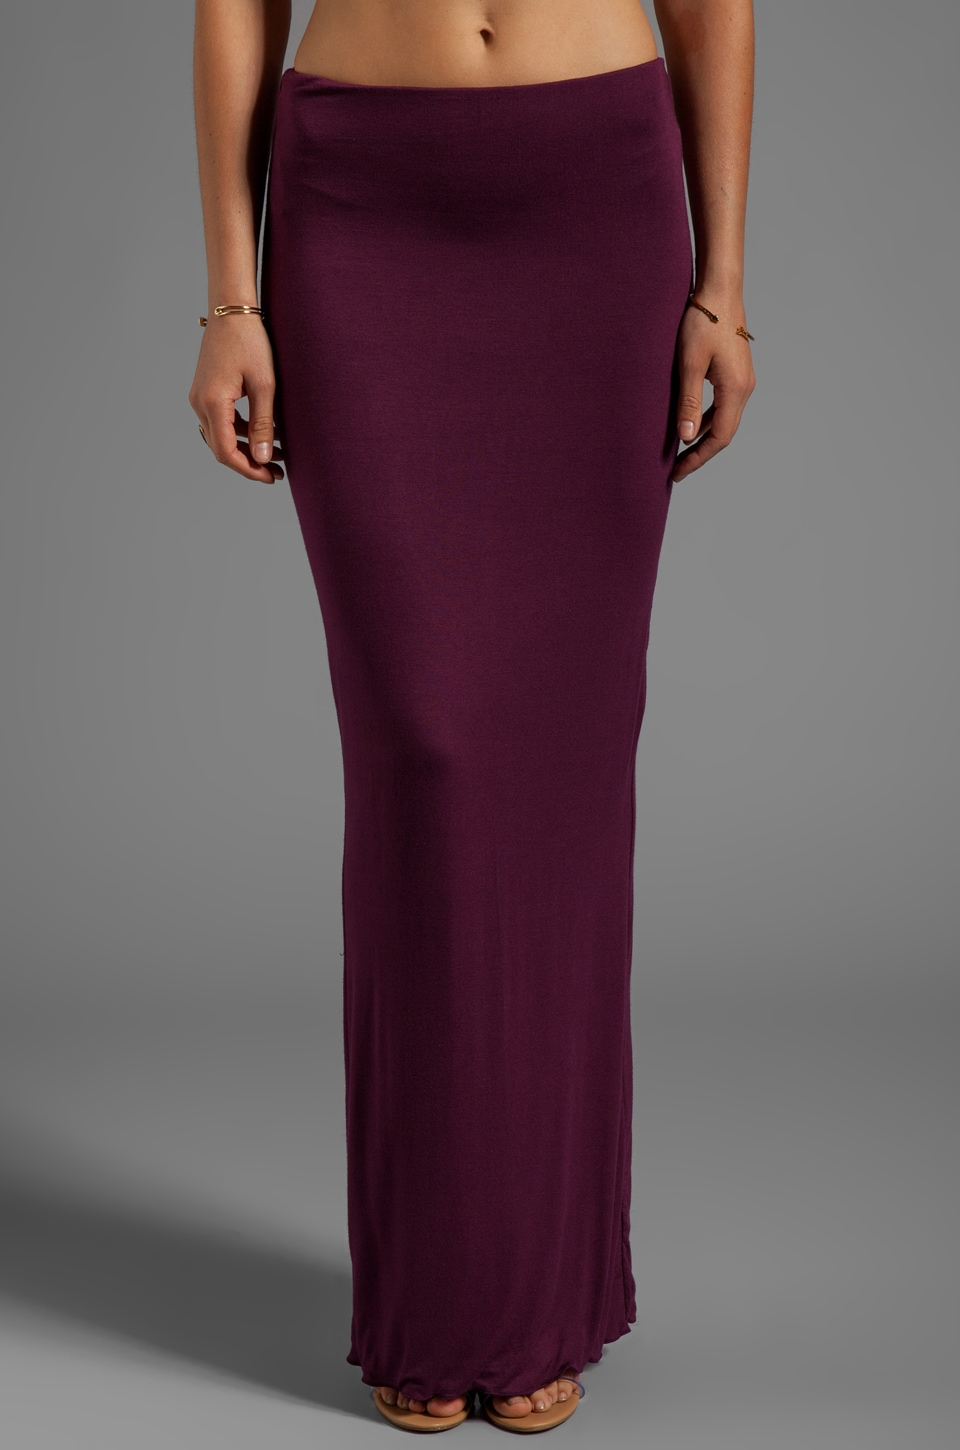 Indah Montana Maxi Tube Skirt in Plum